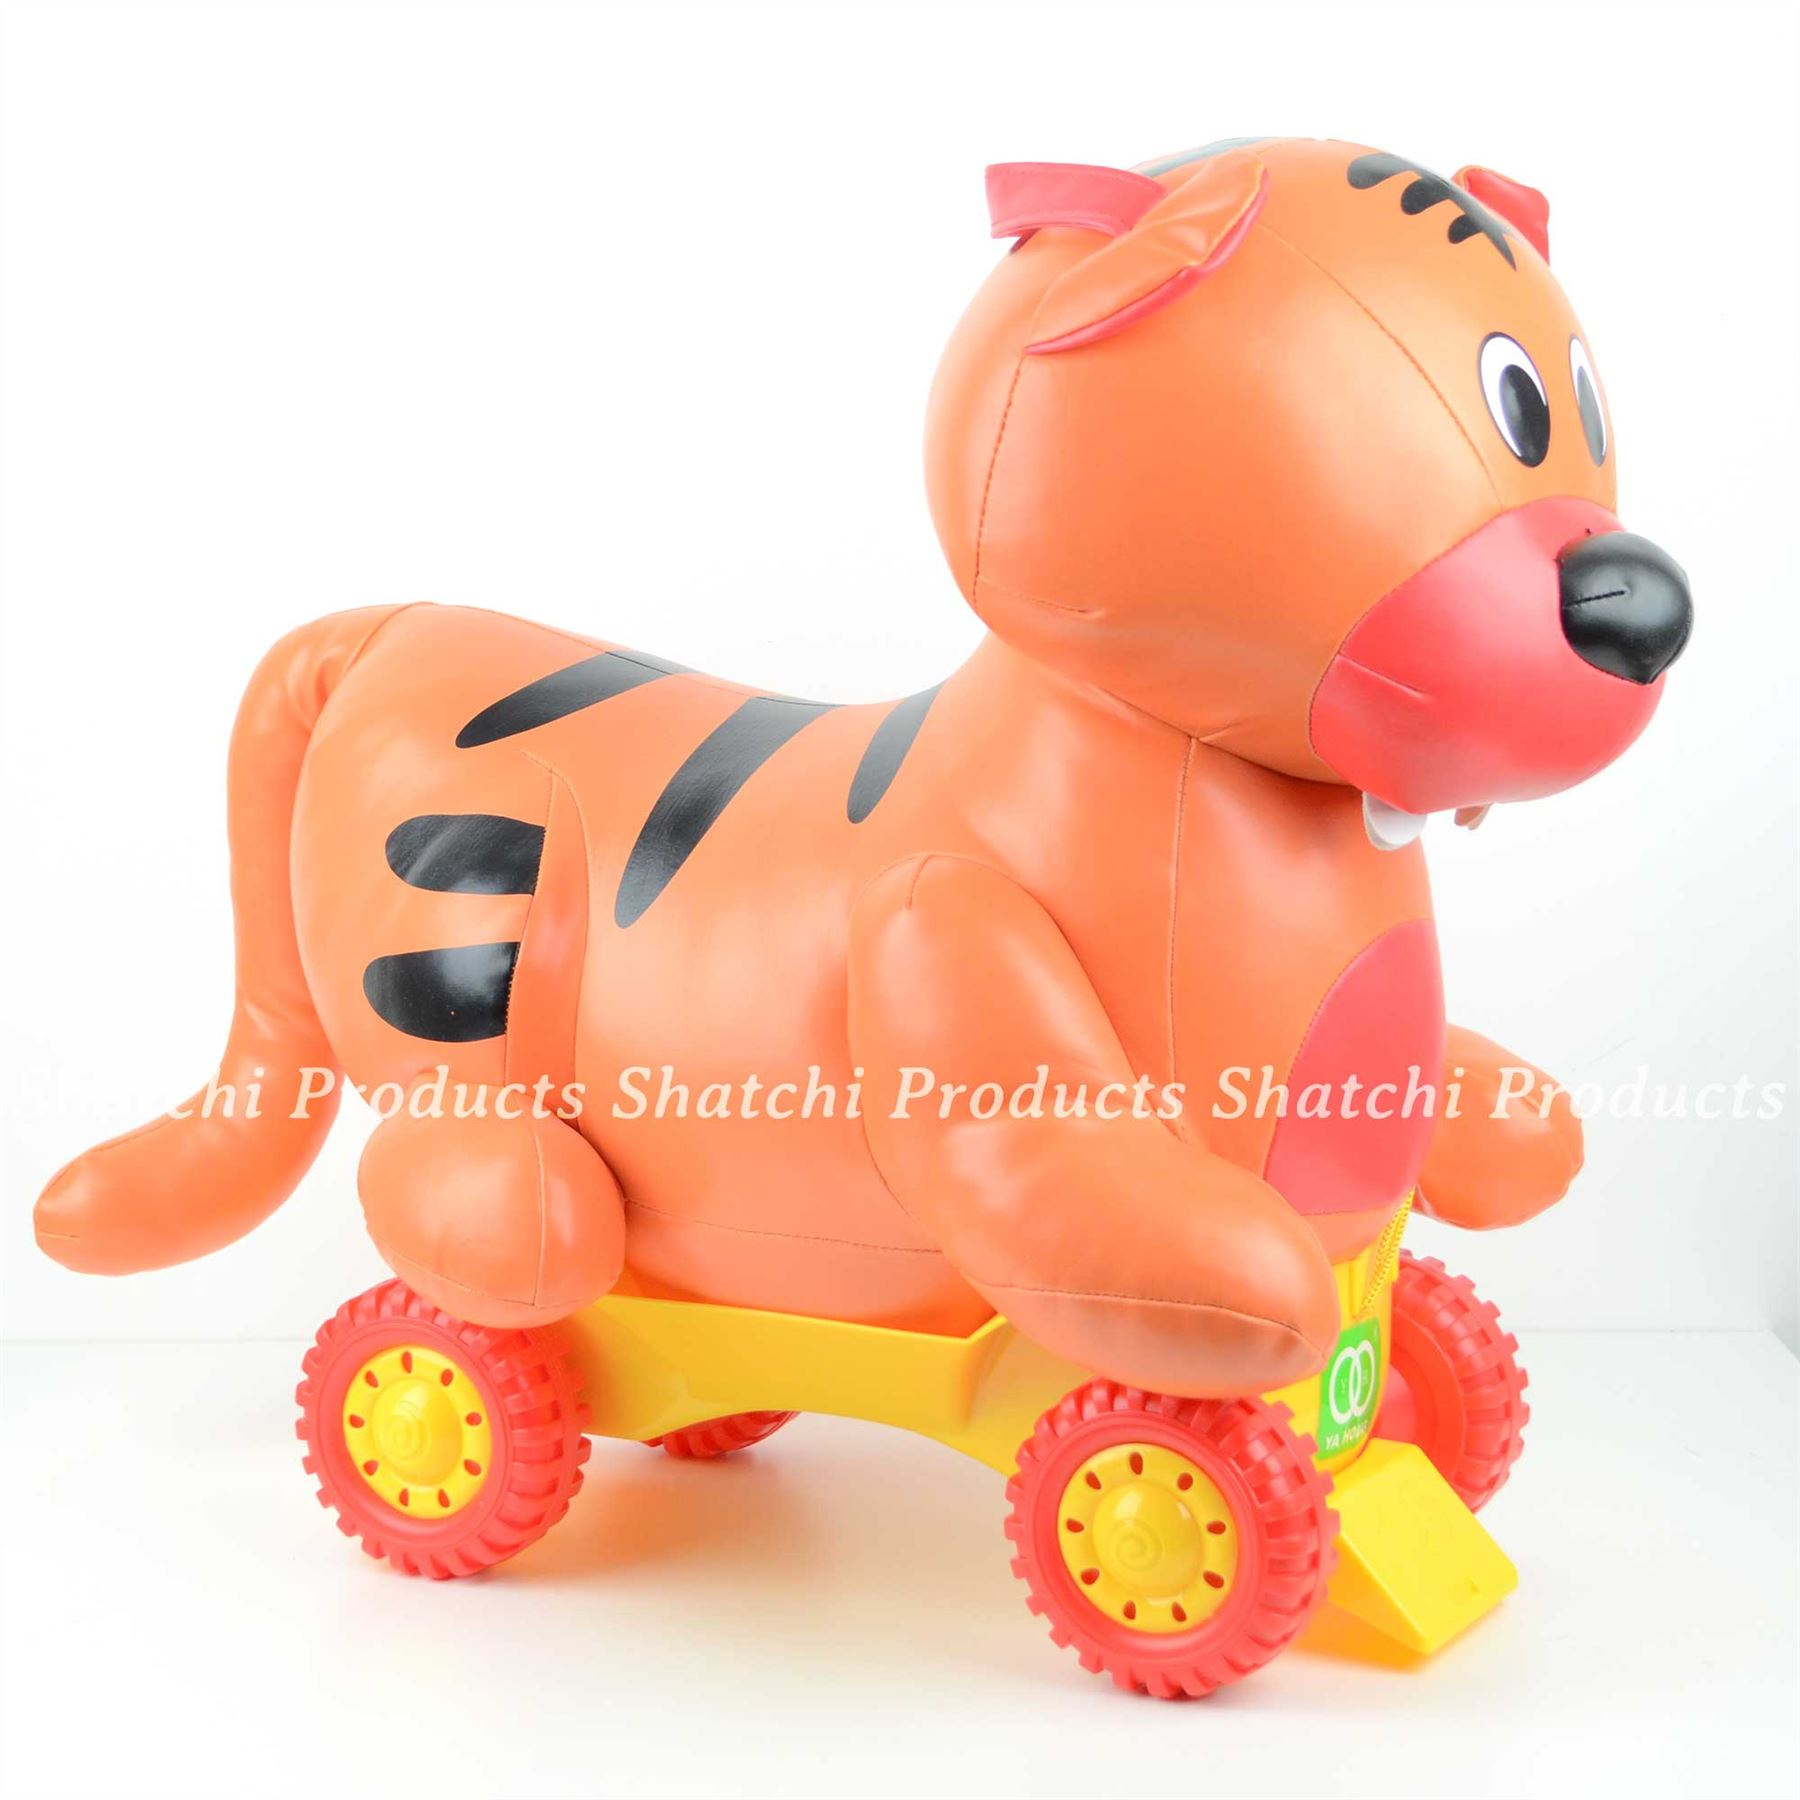 Kids Ride on Toys Baby Ride Toys Christmas Kids Gifts